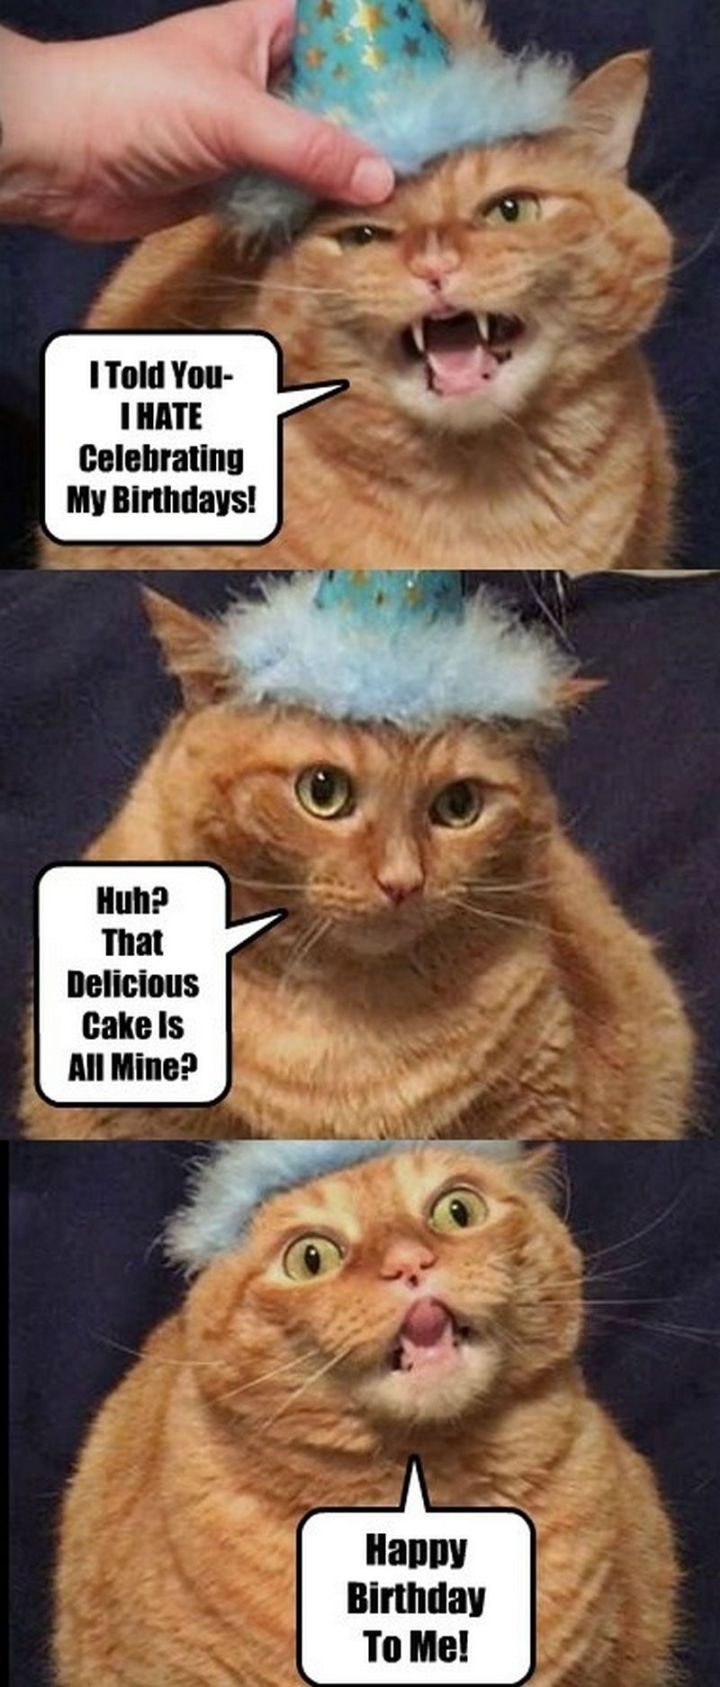 "101 Funny Cat Birthday Memes - ""I told you - I HATE celebrating my birthday! Huh? That delicious cake is all mine? Happy birthday to me!"""